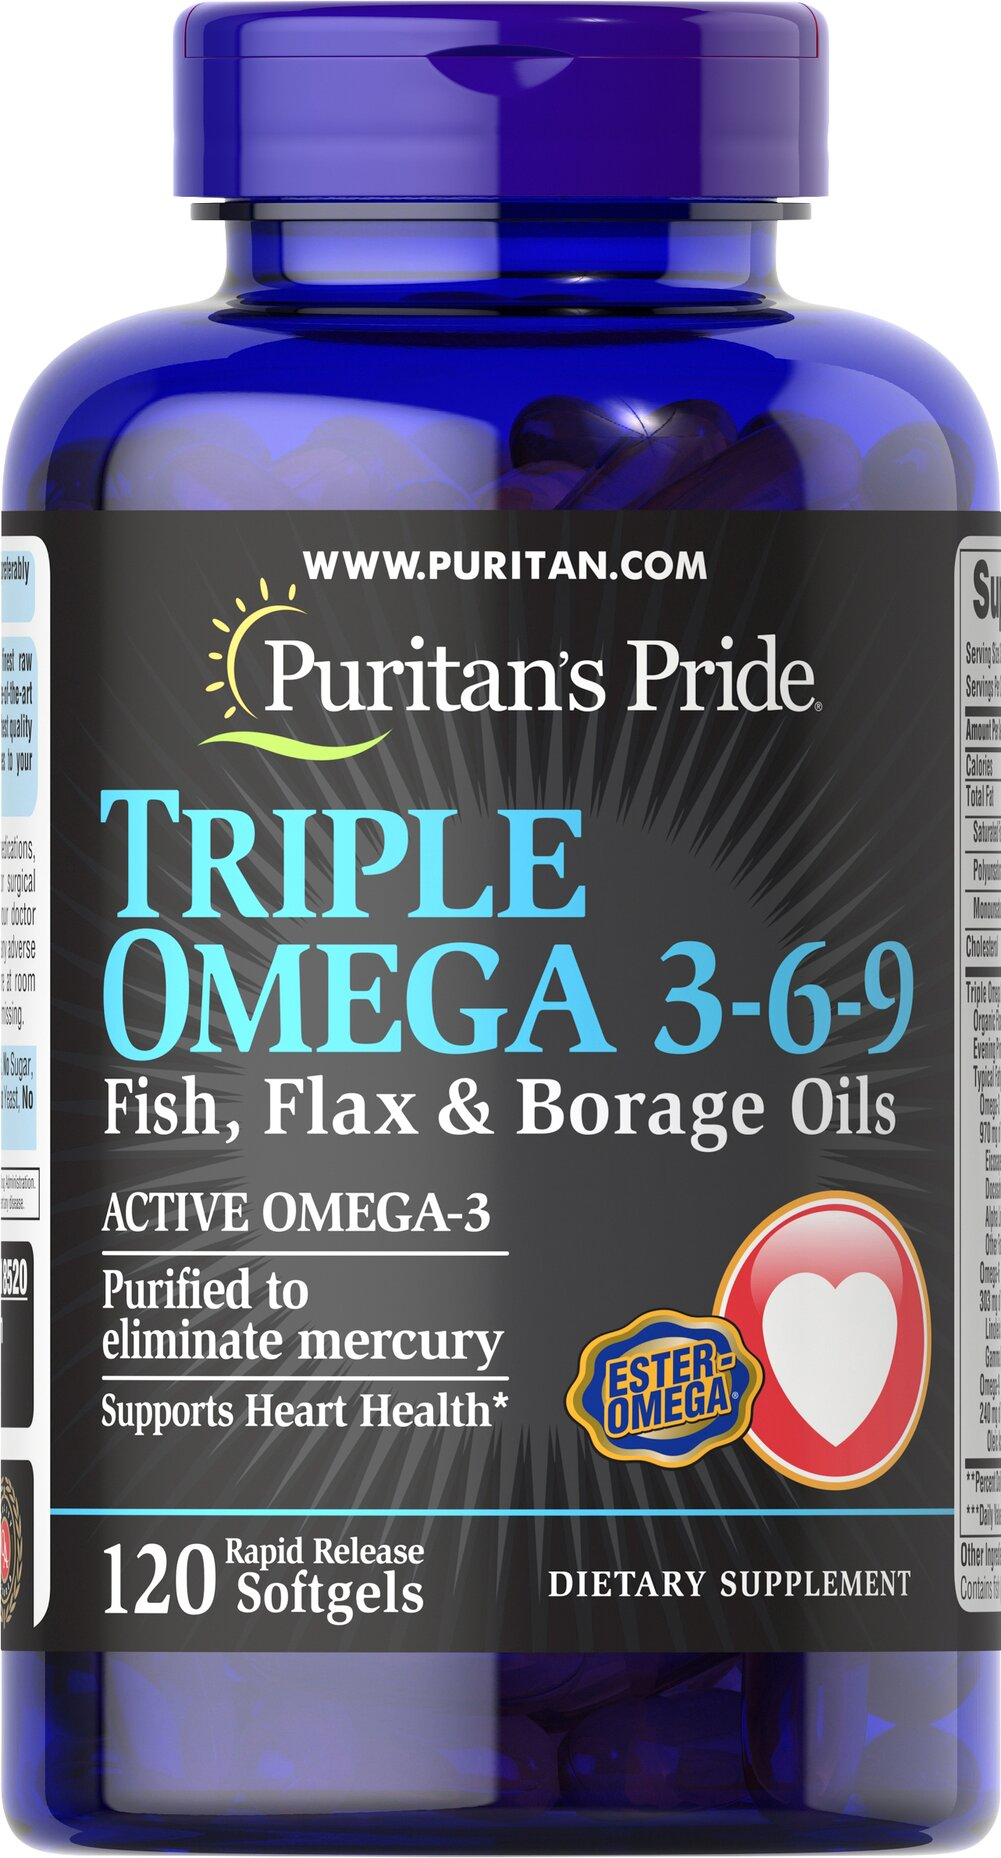 "Triple Omega 3-6-9 Fish, Flax & Borage Oils <p><strong>Purified to Eliminate Mercury</strong></p><p>Contains Omega-3, Omega-6 and Omega-9 – the ""good"" fats important for cellular, heart and metabolic health.** </p>TRIPLE OMEGA 3-6-9 contains <em>a proprietary blend of essential oils, including Flaxseed Oil, Fish Oil, Evening Primrose Oil and Borage Oil, and is a good source of Vitamin E.</em><p></p> 120 Softgels  $21.49"